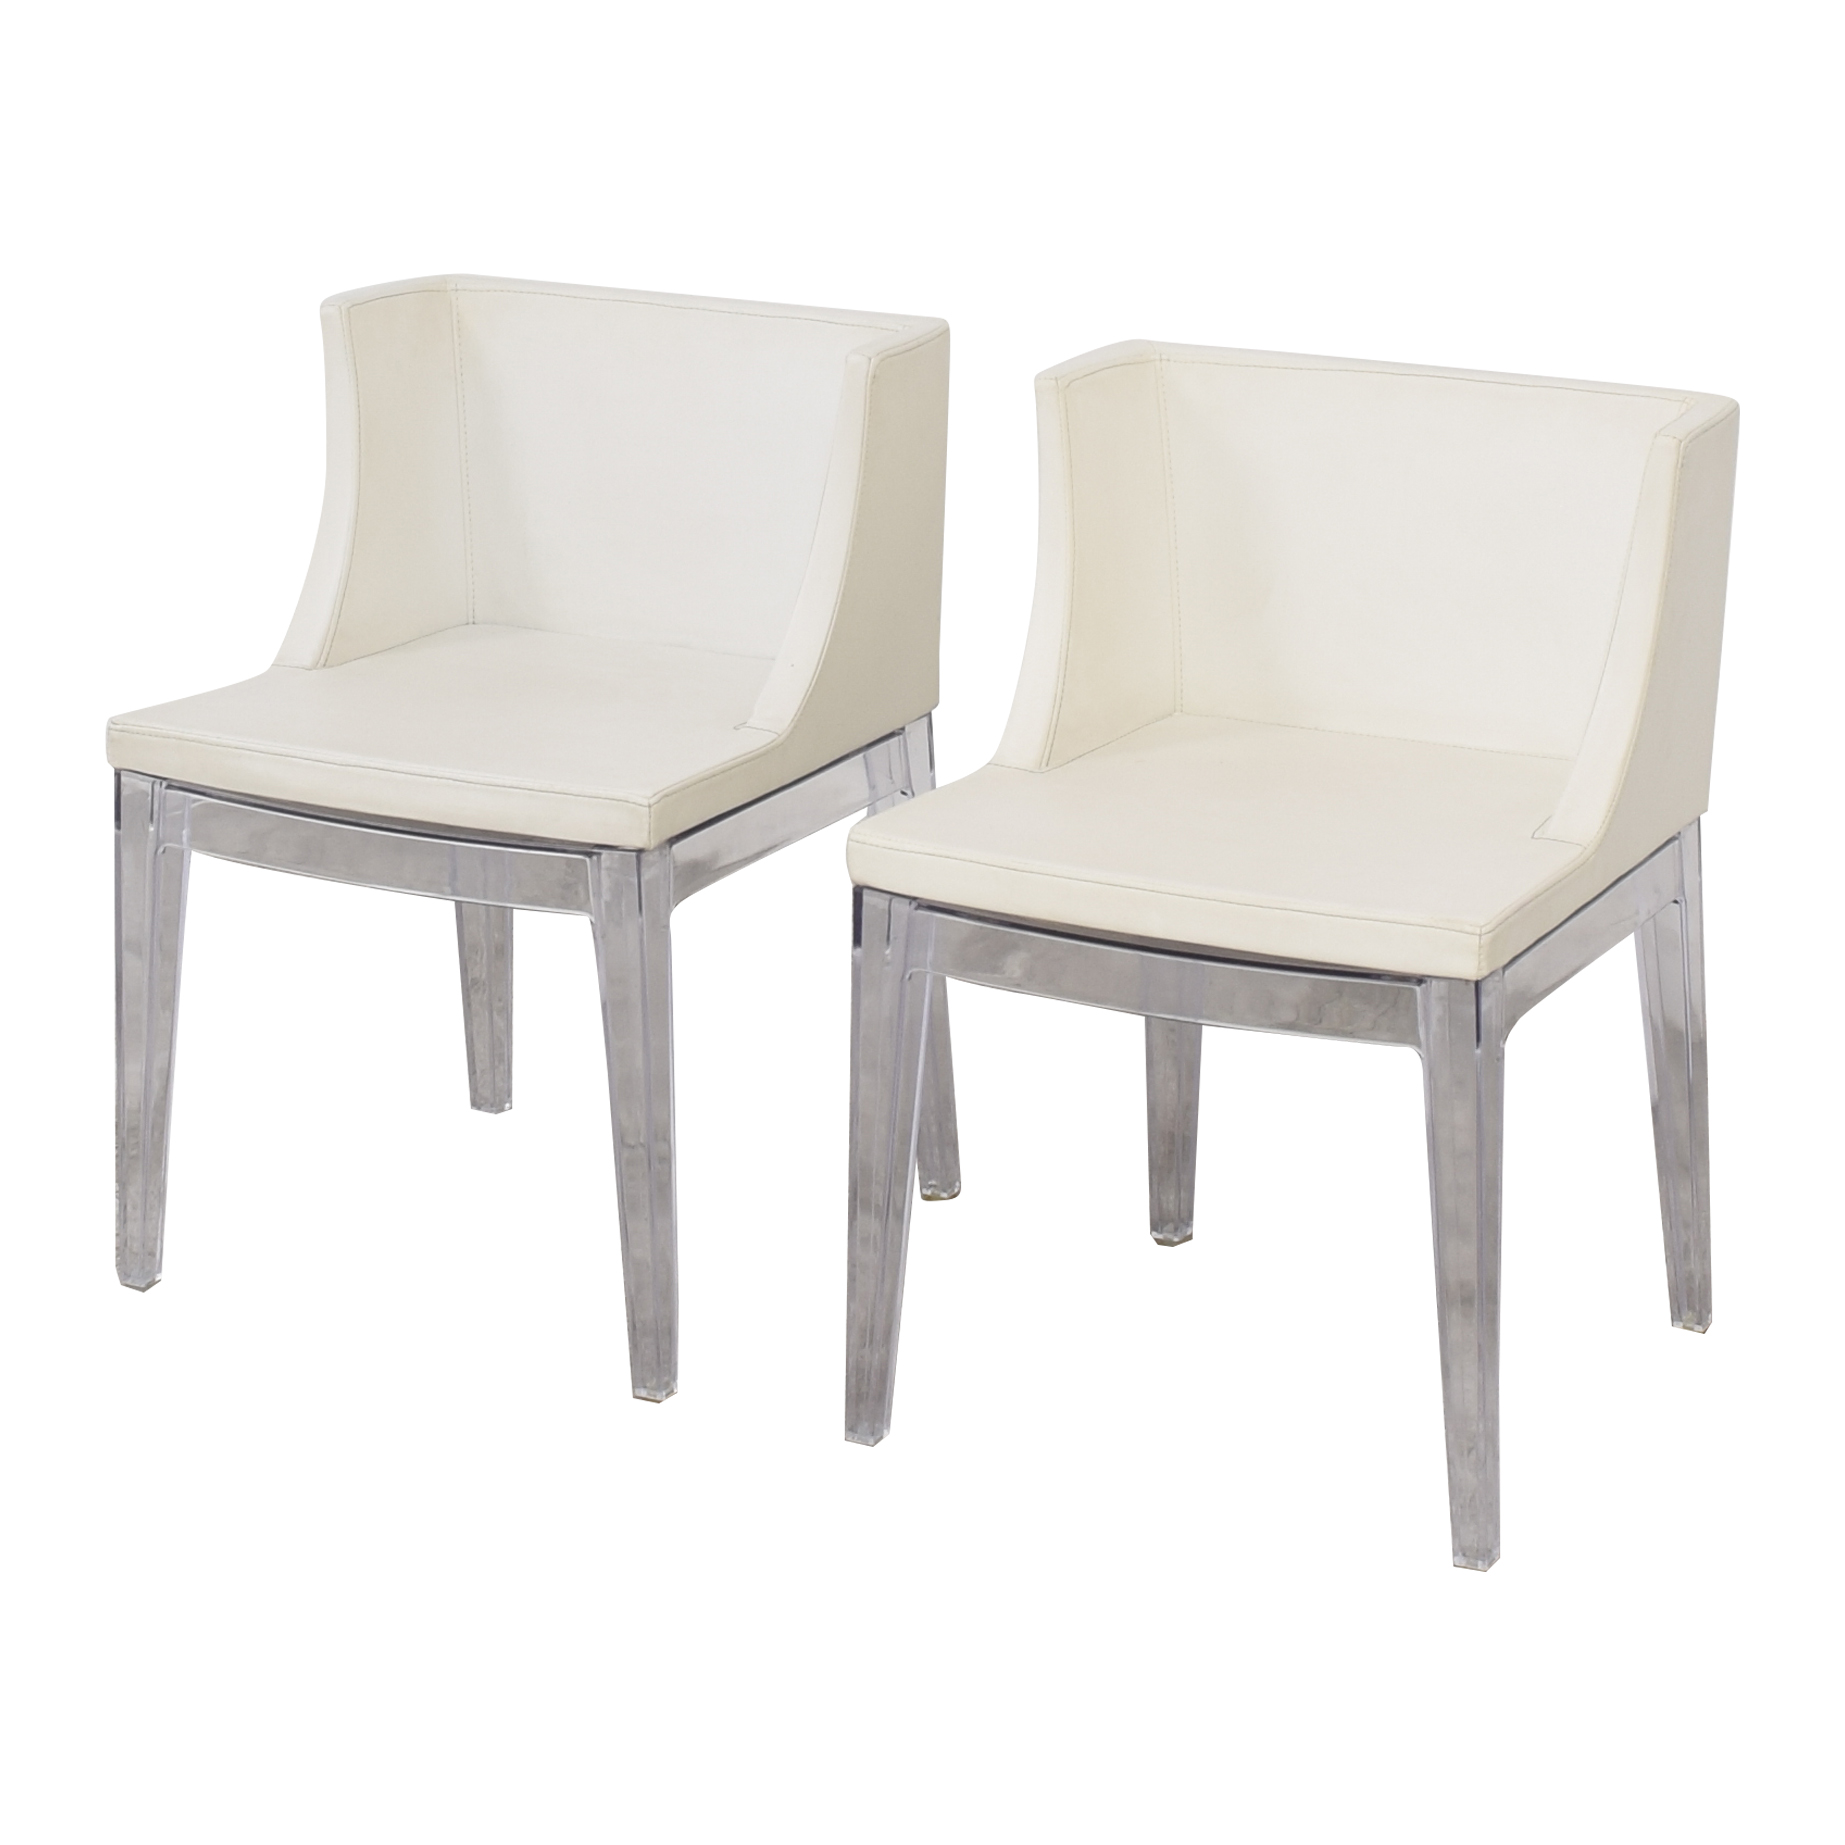 buy Mademoiselle-Style Chairs  Chairs